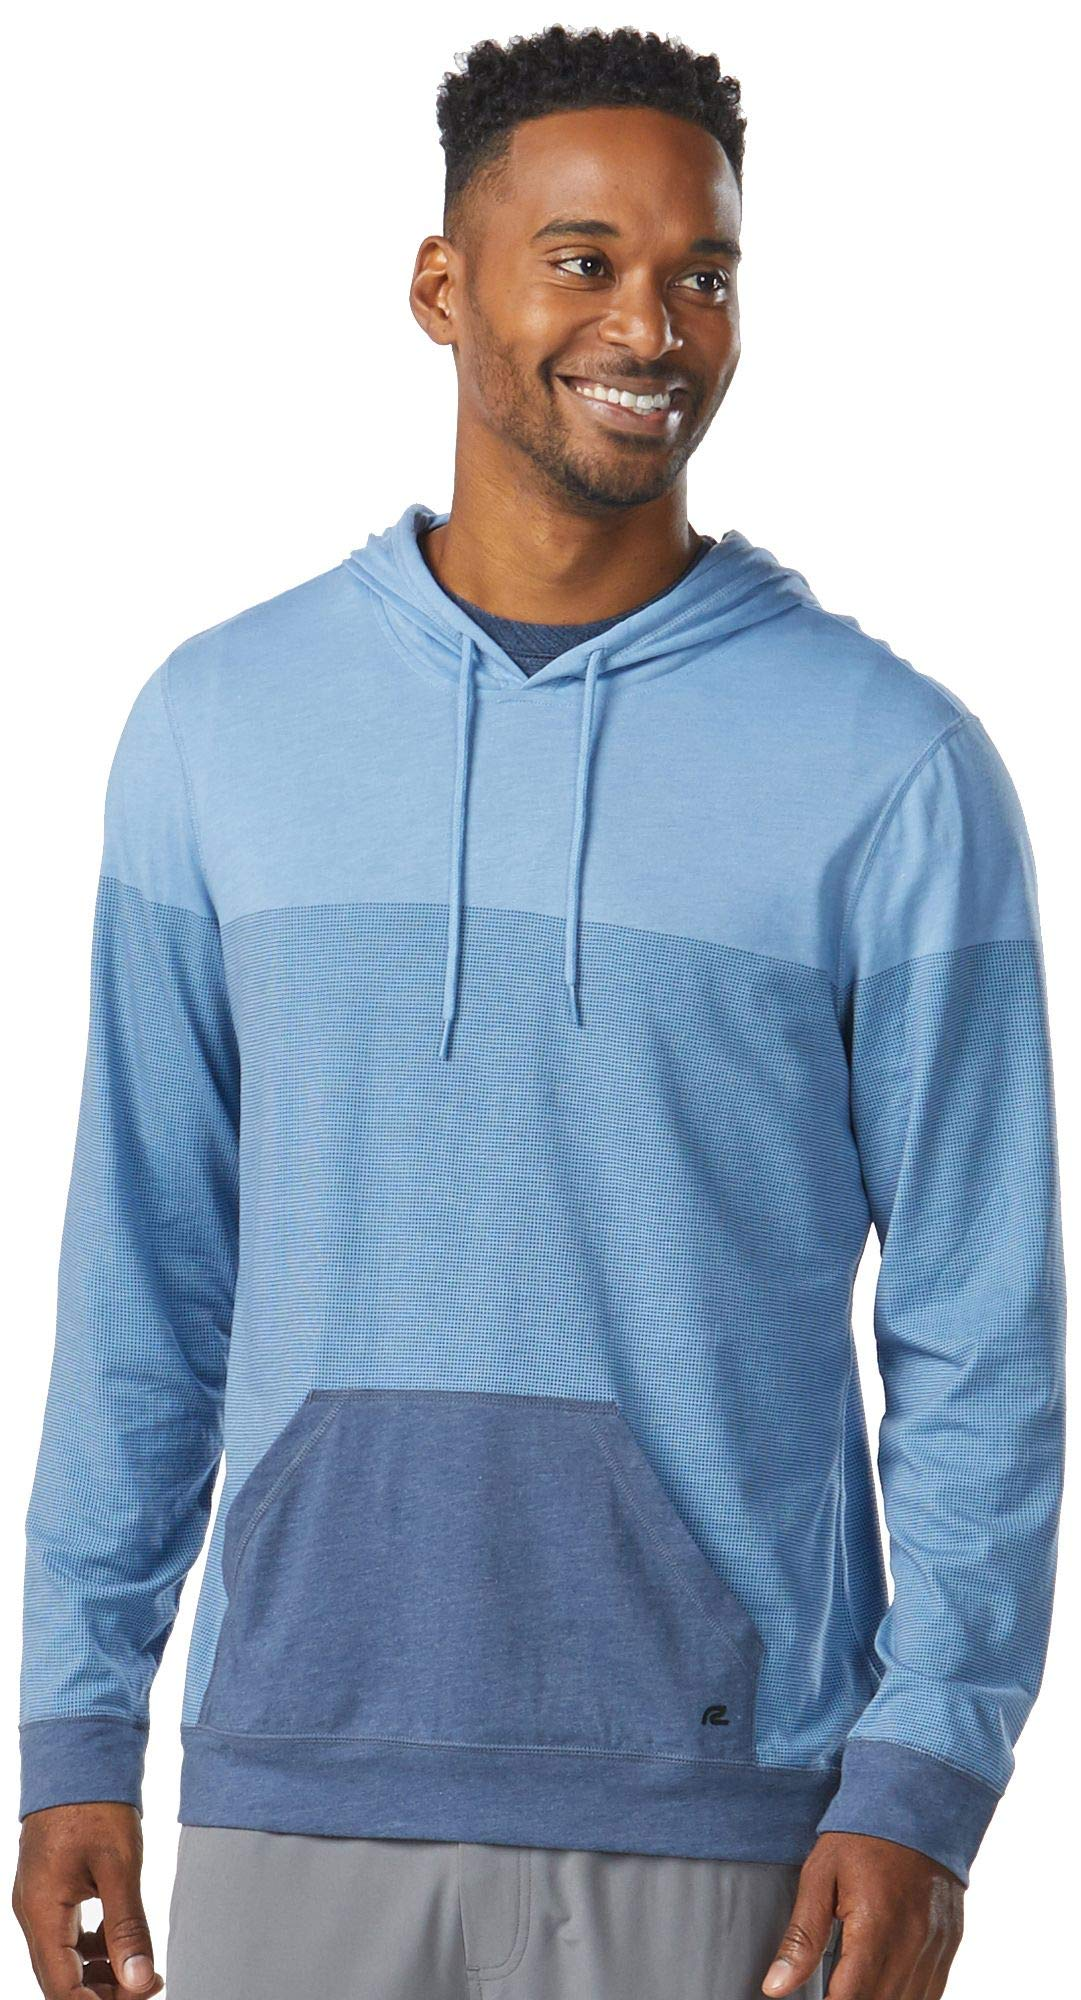 R-Gear Men's Pullover Hoodie Sweatshirt for Running, Exercise, Casual | Element